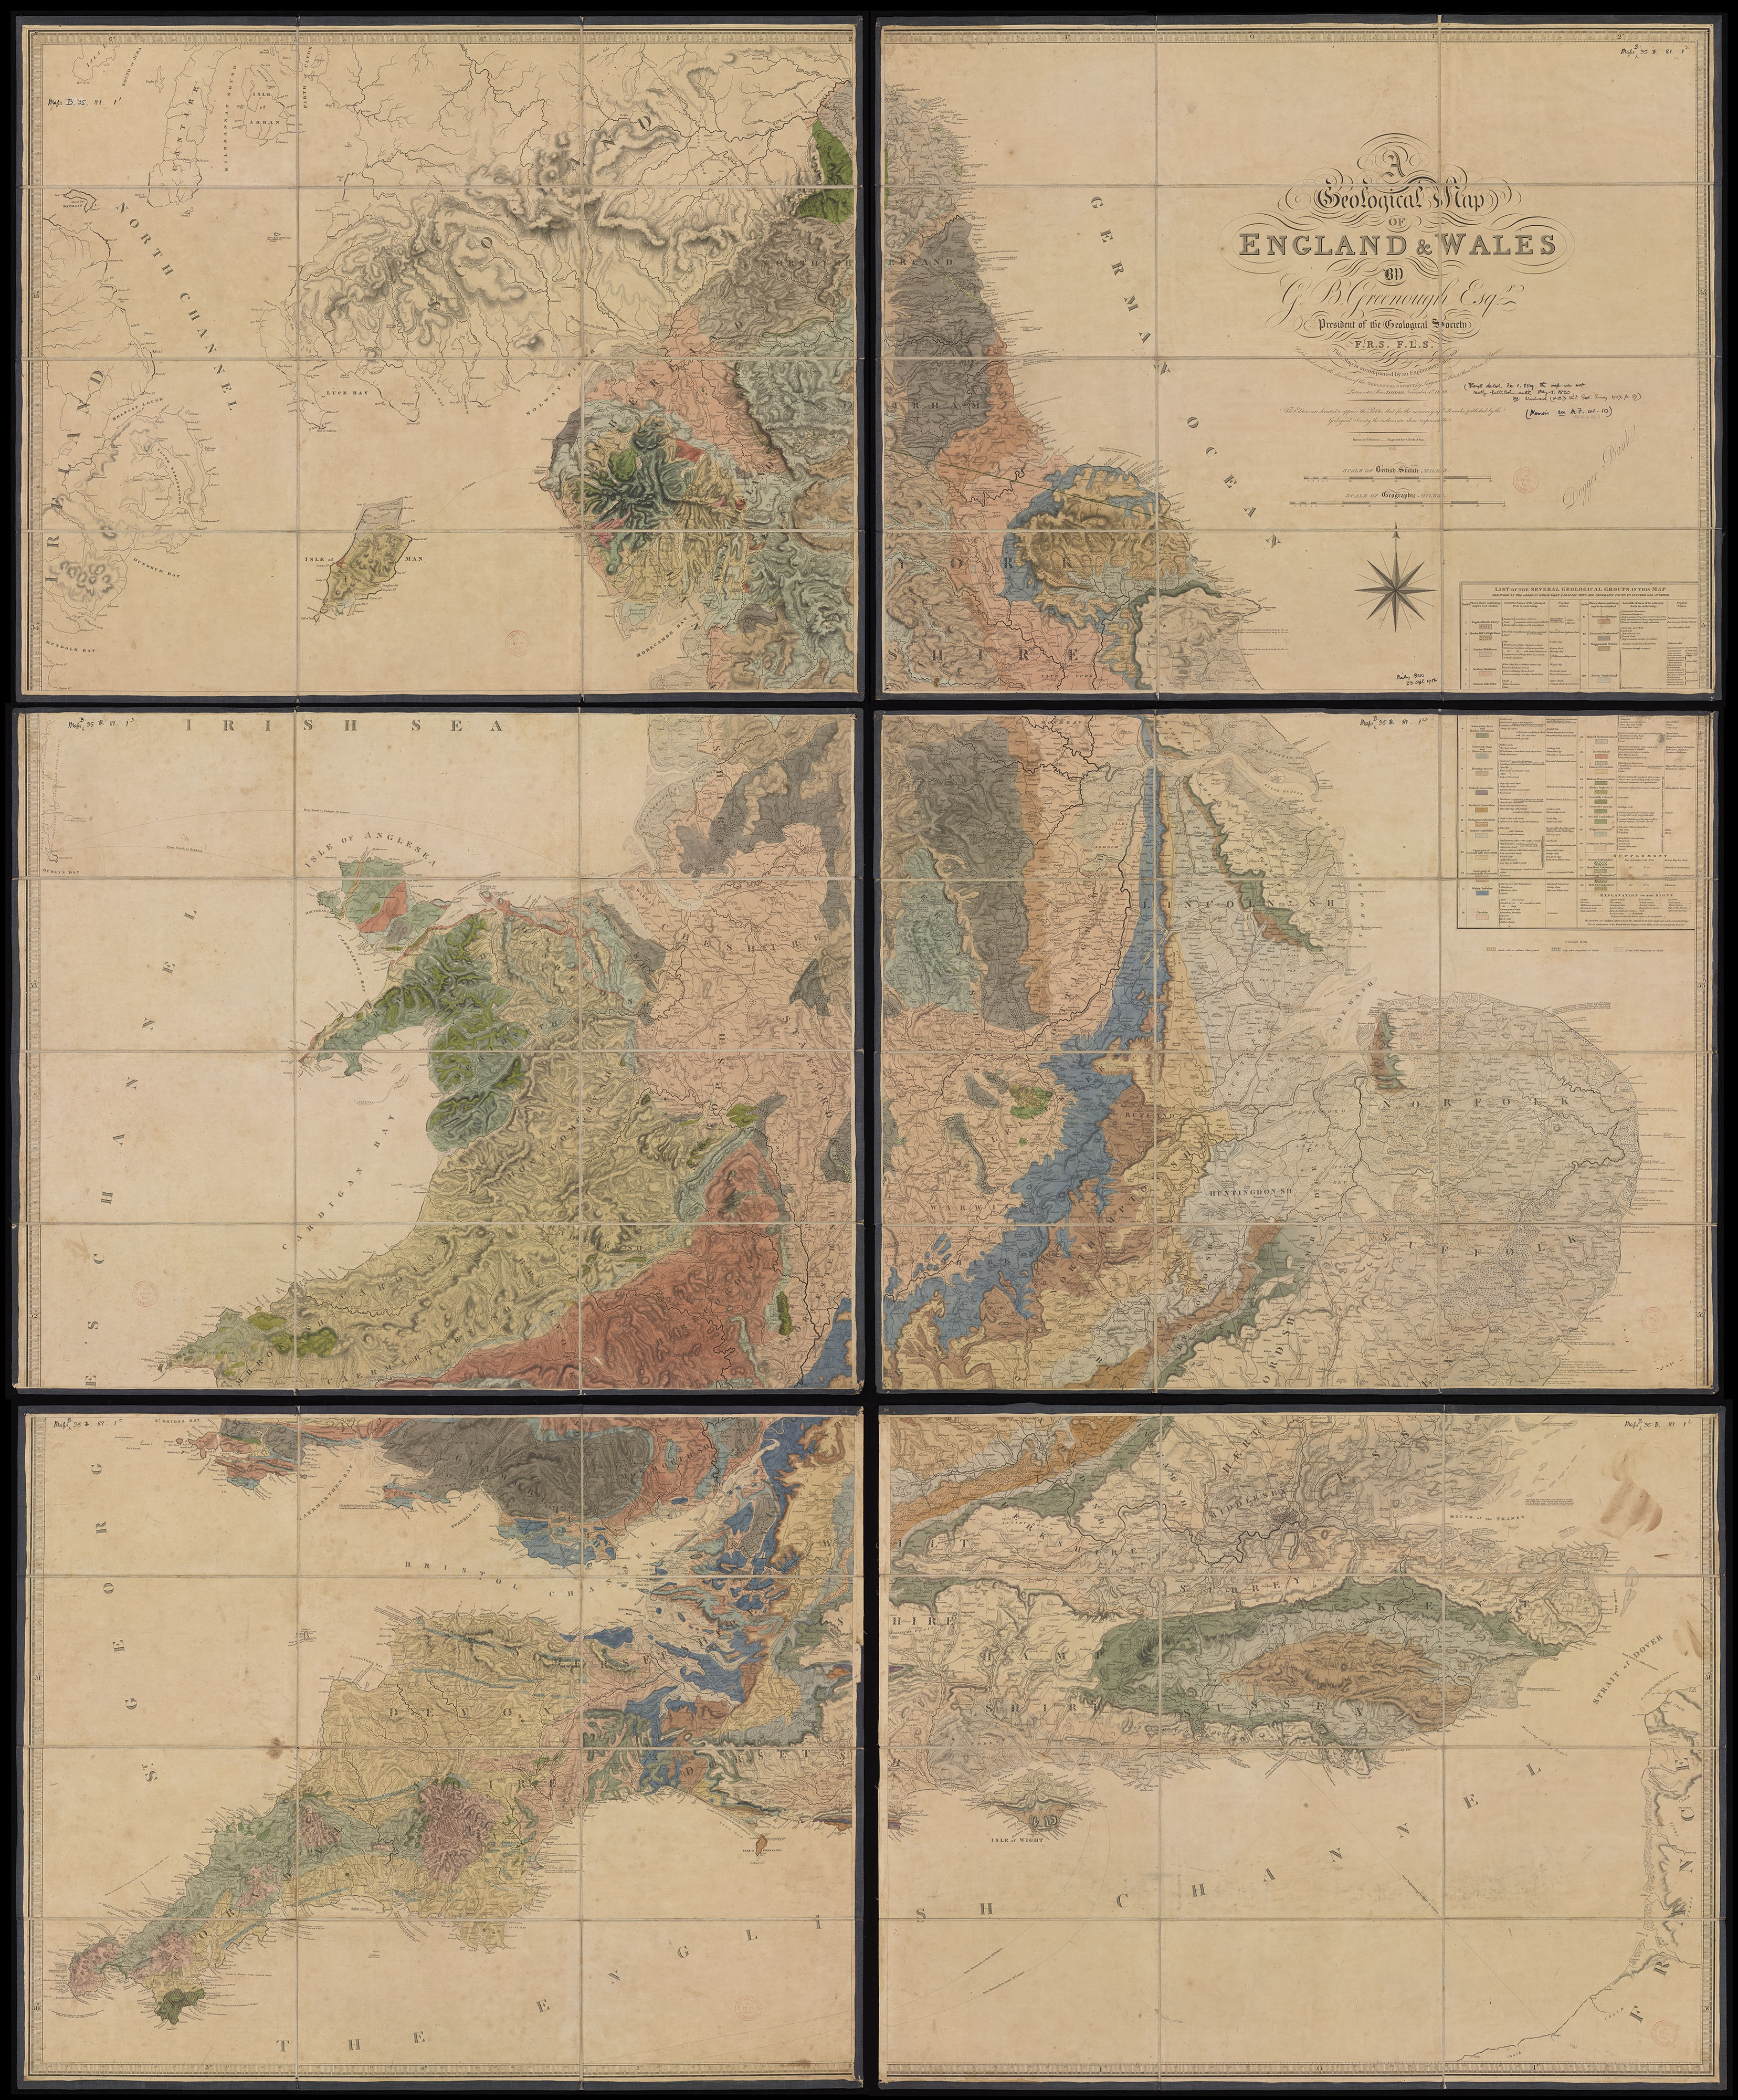 A Geological Map of England and Wales